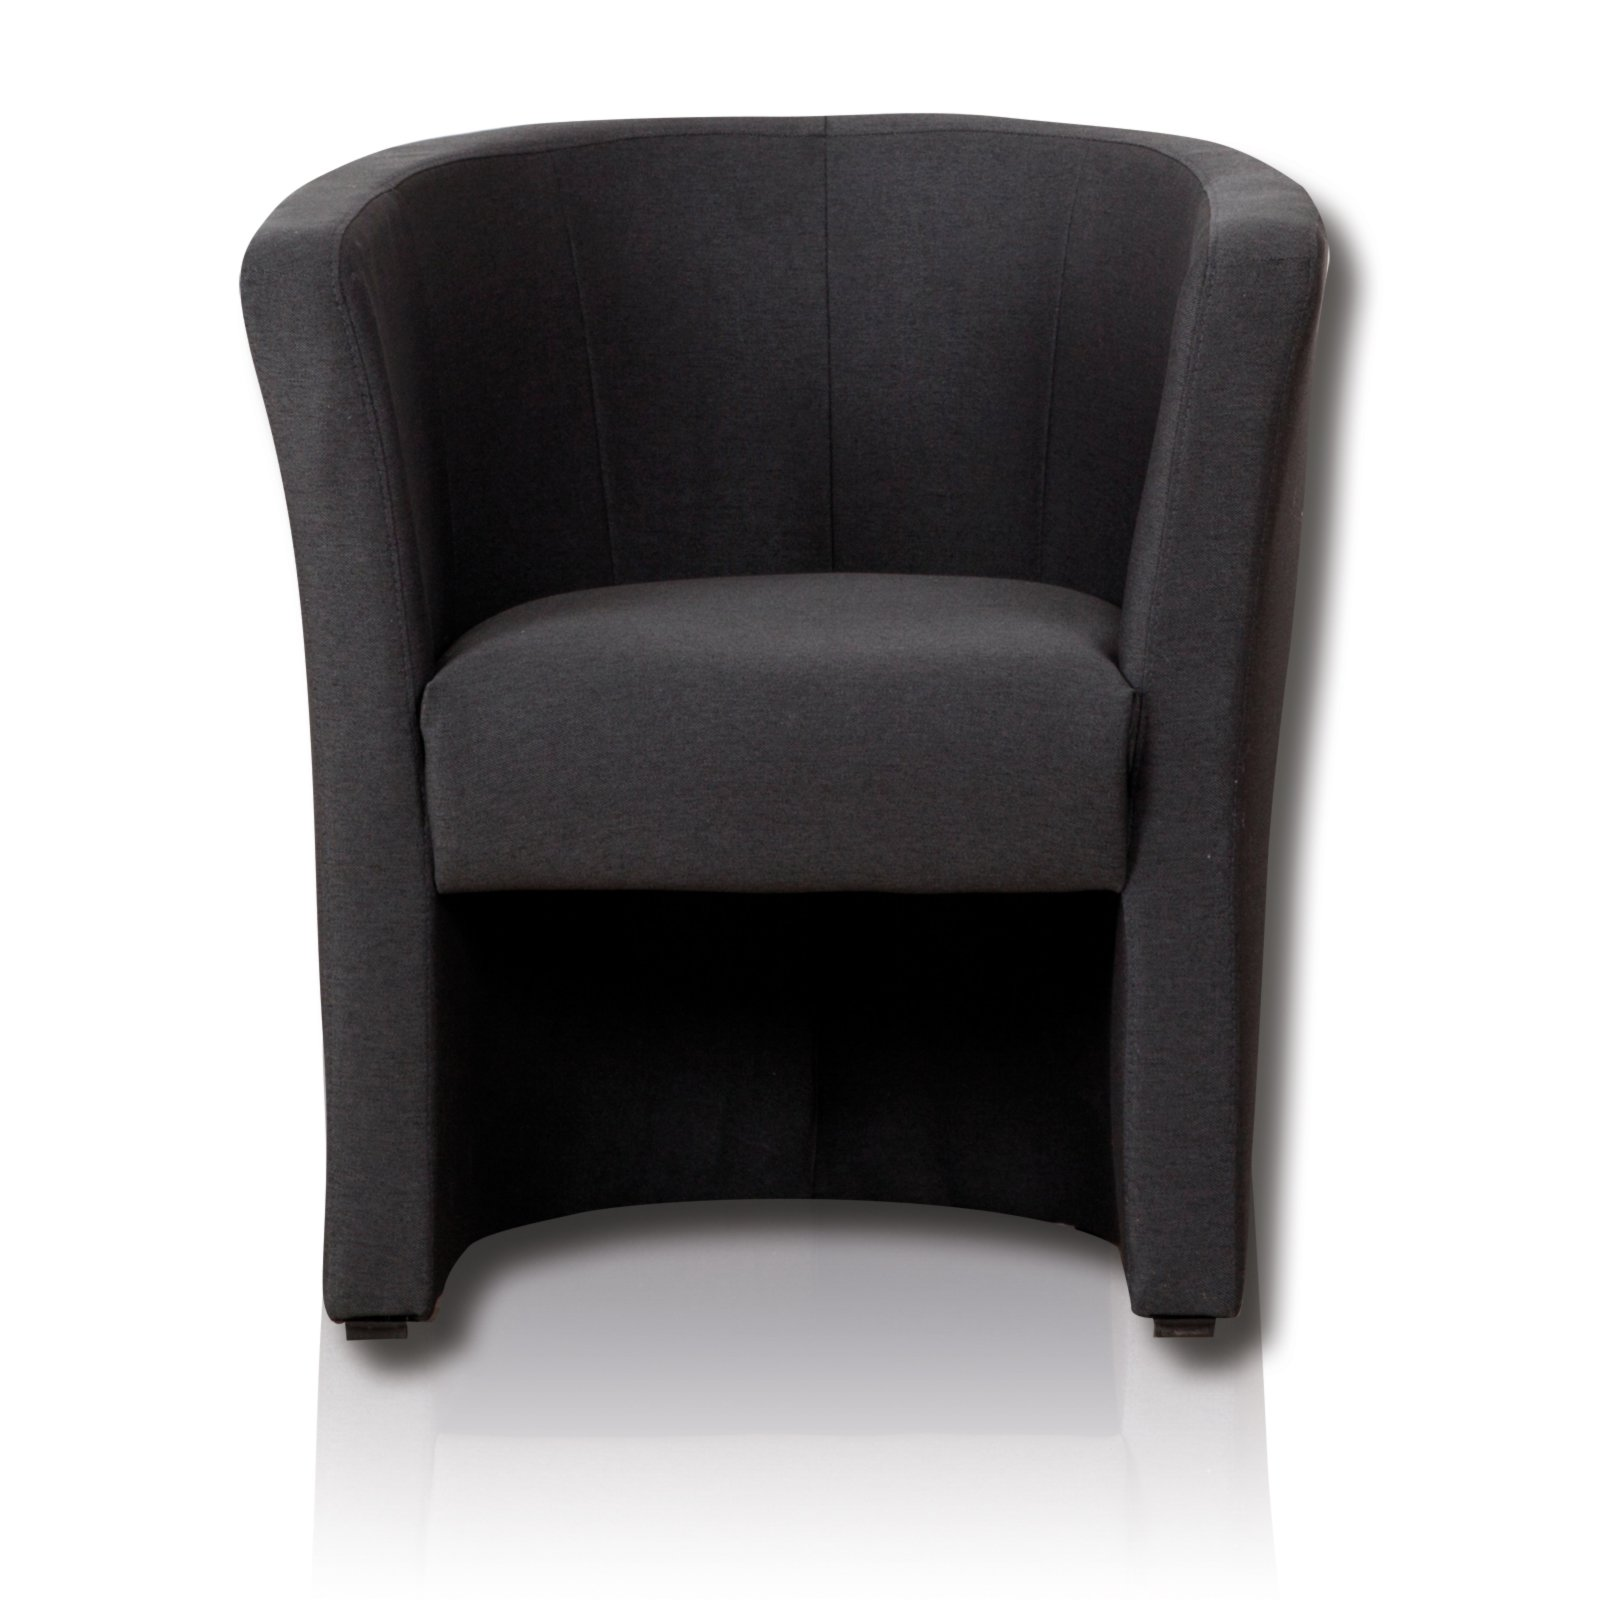 Lounge Sessel Grün Cocktailsessel - Anthrazit - 75x83 Cm | Cocktailsessel